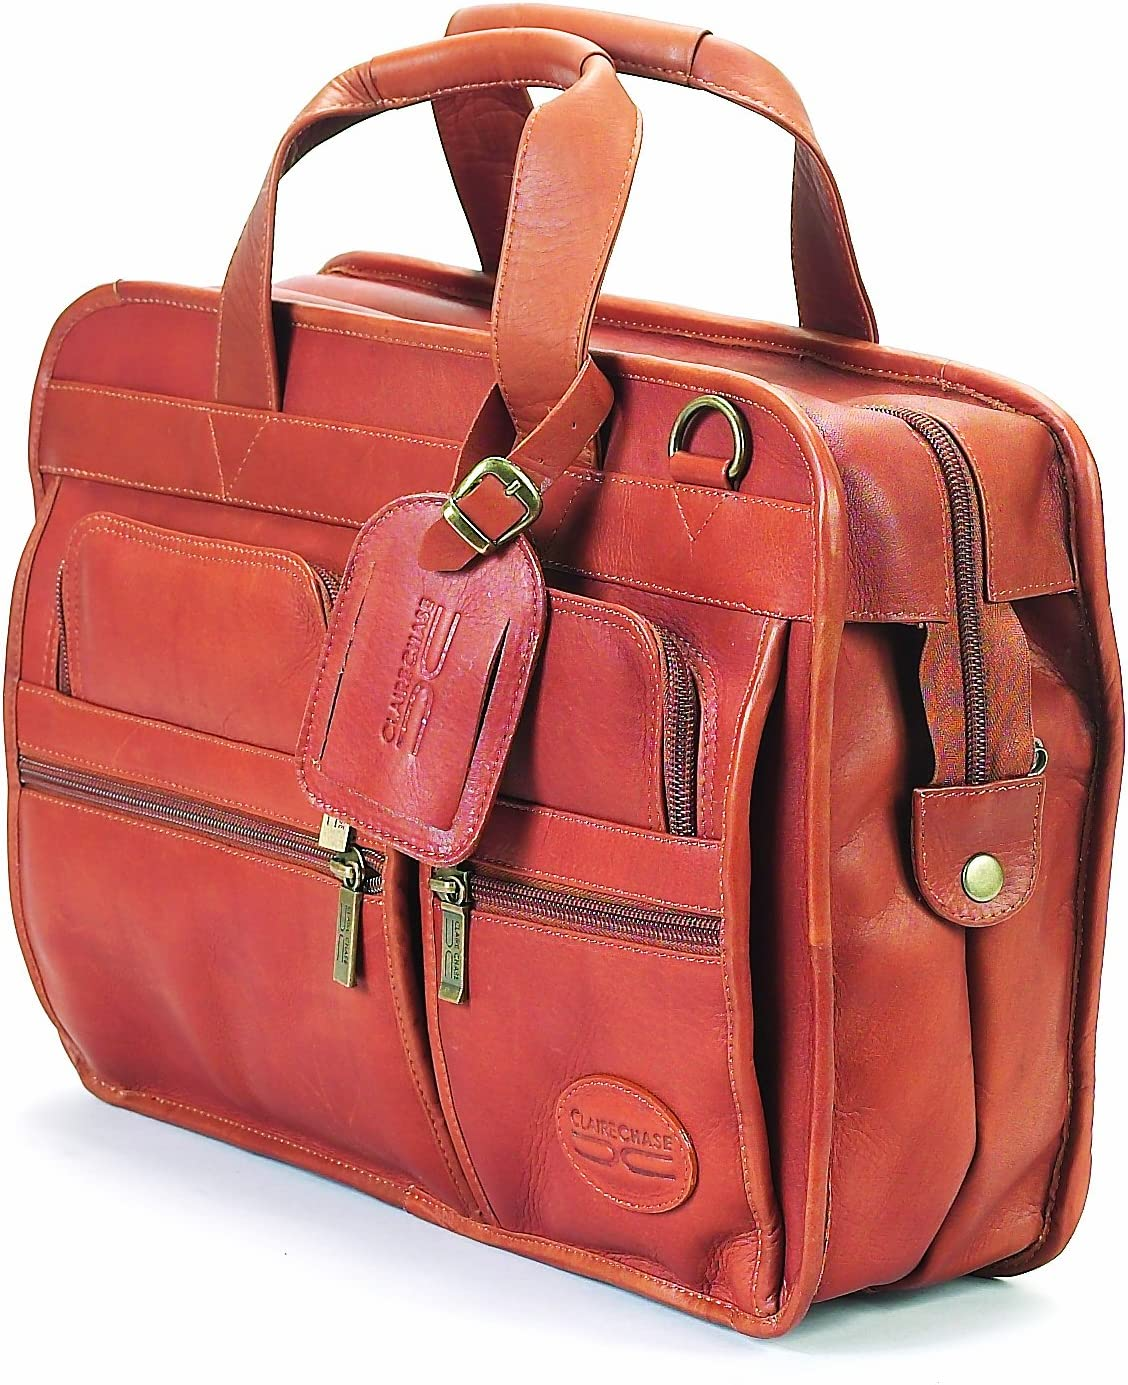 Claire Chase Slimline Executive Briefcase, Saddle, One Size